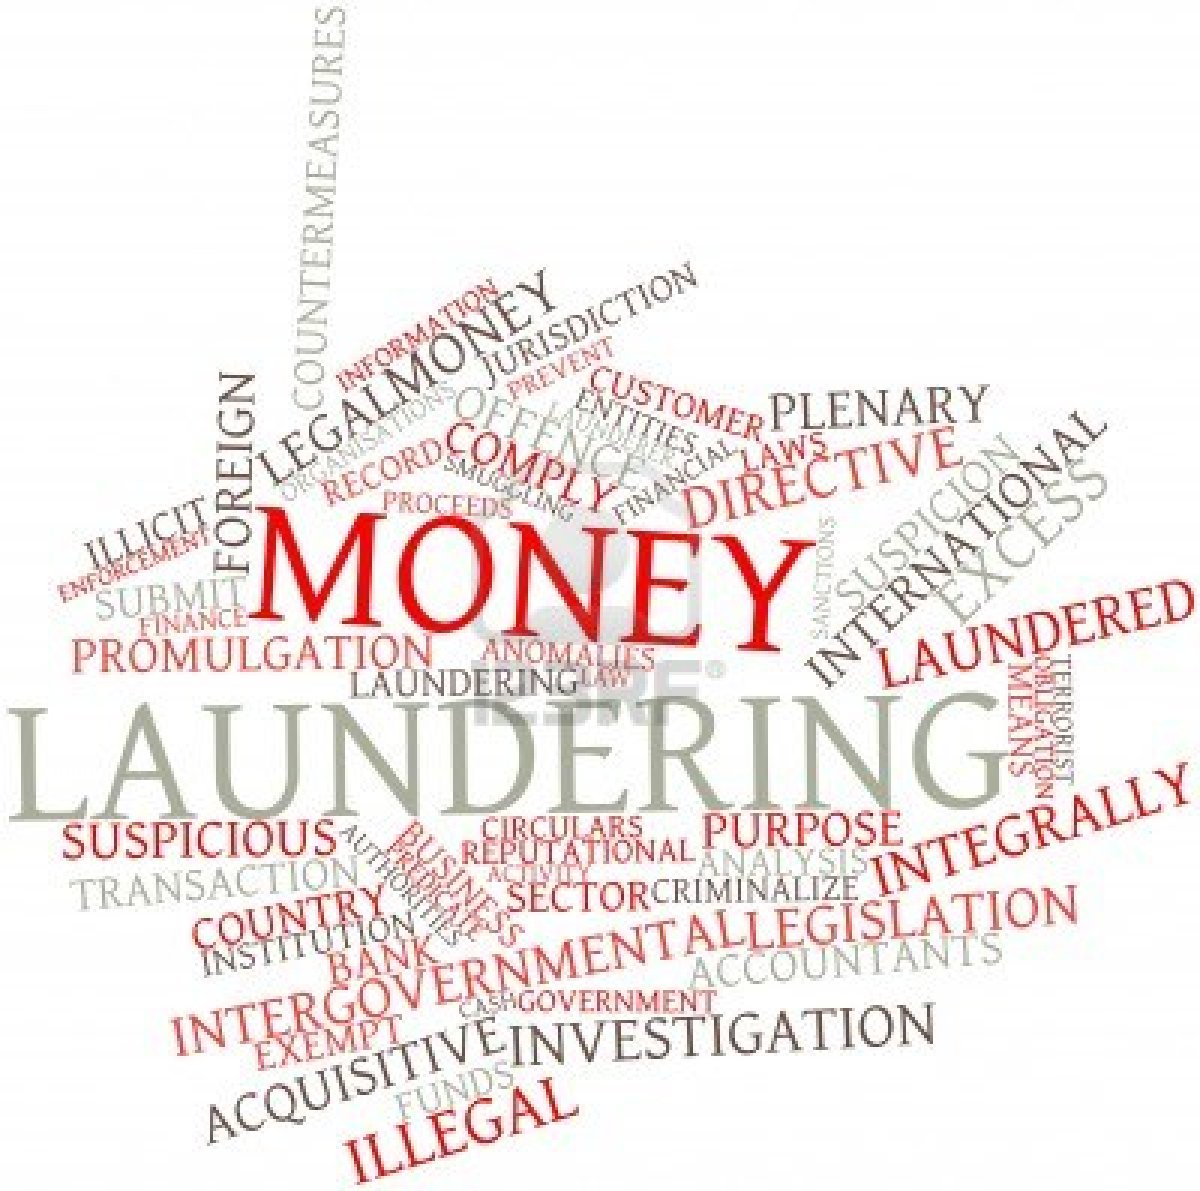 mony londring Cryptocurrency money laundering is increasing dramatically, being already three  times greater than in 2017 and we're only half way through the year, observes.